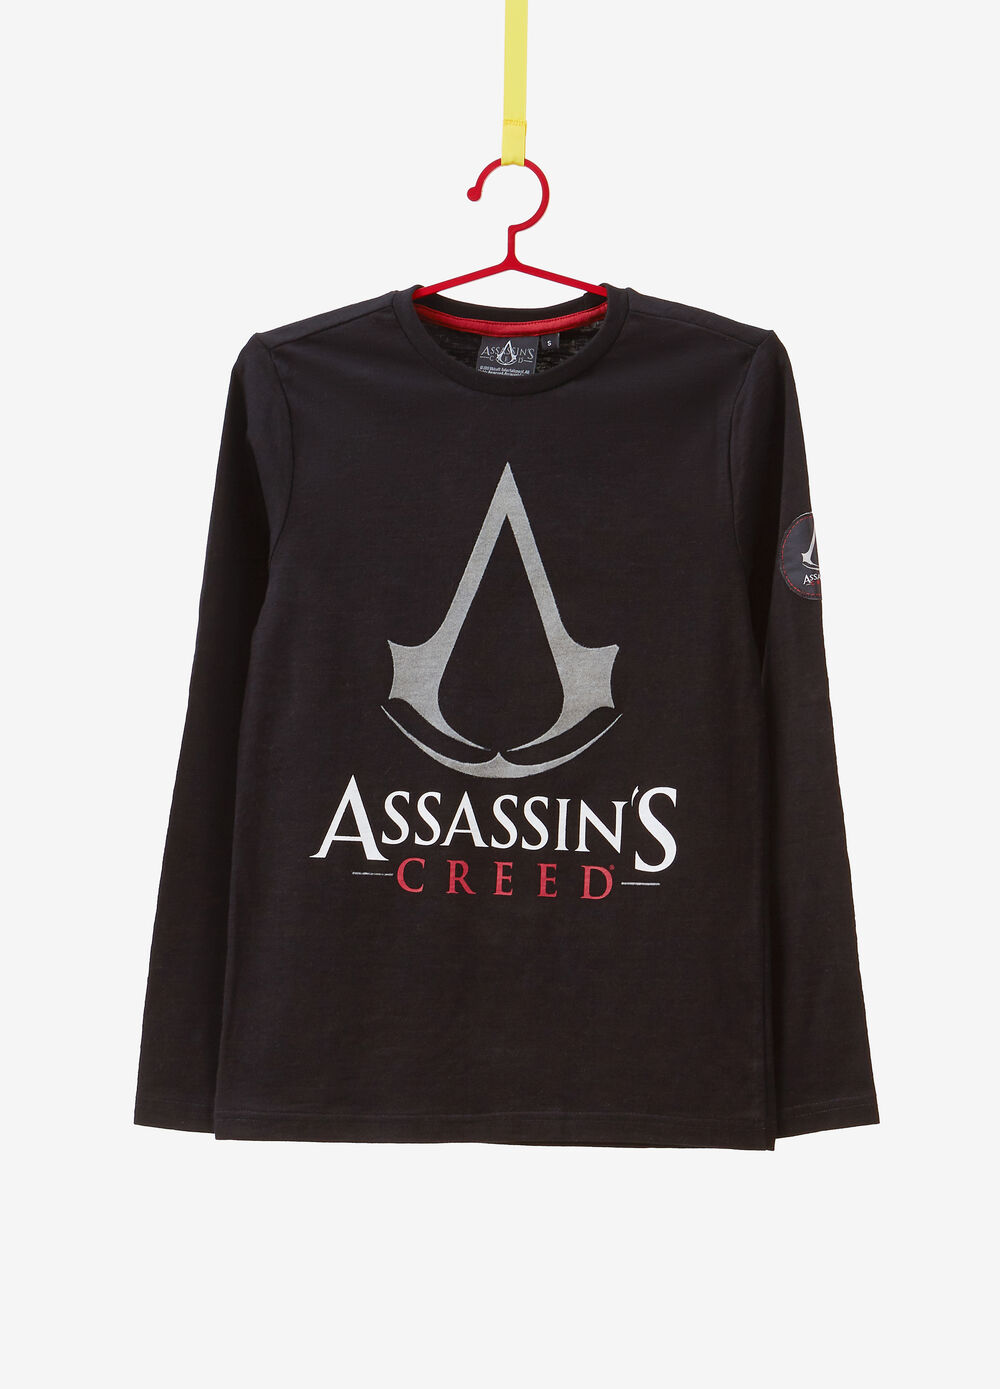 100% cotton Assassin's Creed T-shirt